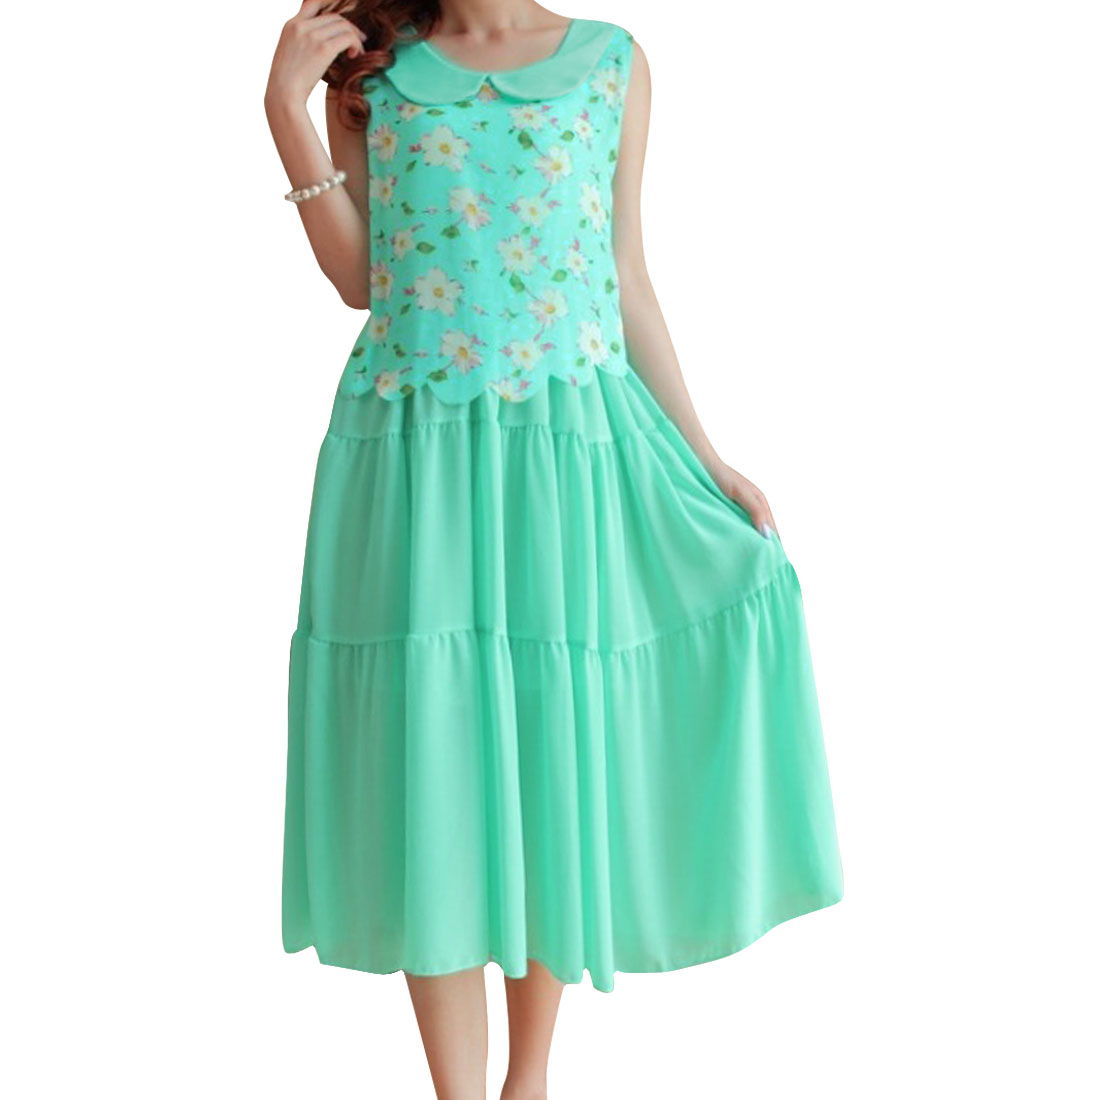 Ladies Mint Doll Collar Sleeveless Floral Pattern Splice Mid-Calf Dress XS